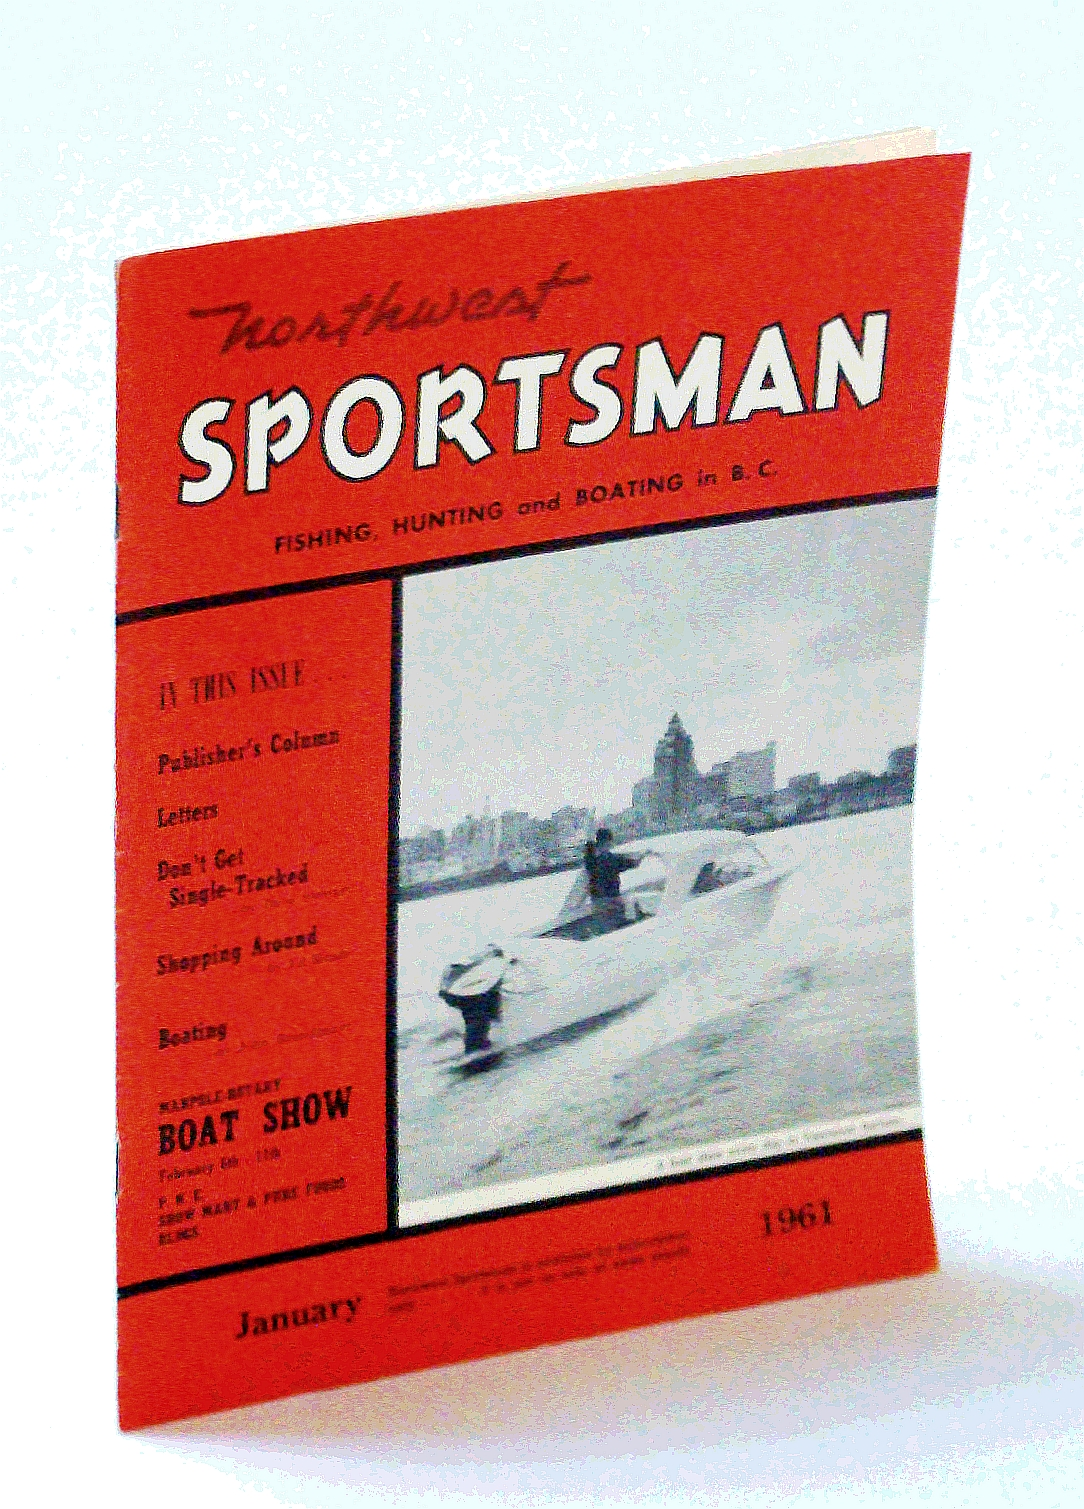 Image for Northwest Sportsman Magazine - Fishing, Hunting and Boating in B.C., January [Jan.] 1961 - The 1961 Marpole-Rotary Boat Show